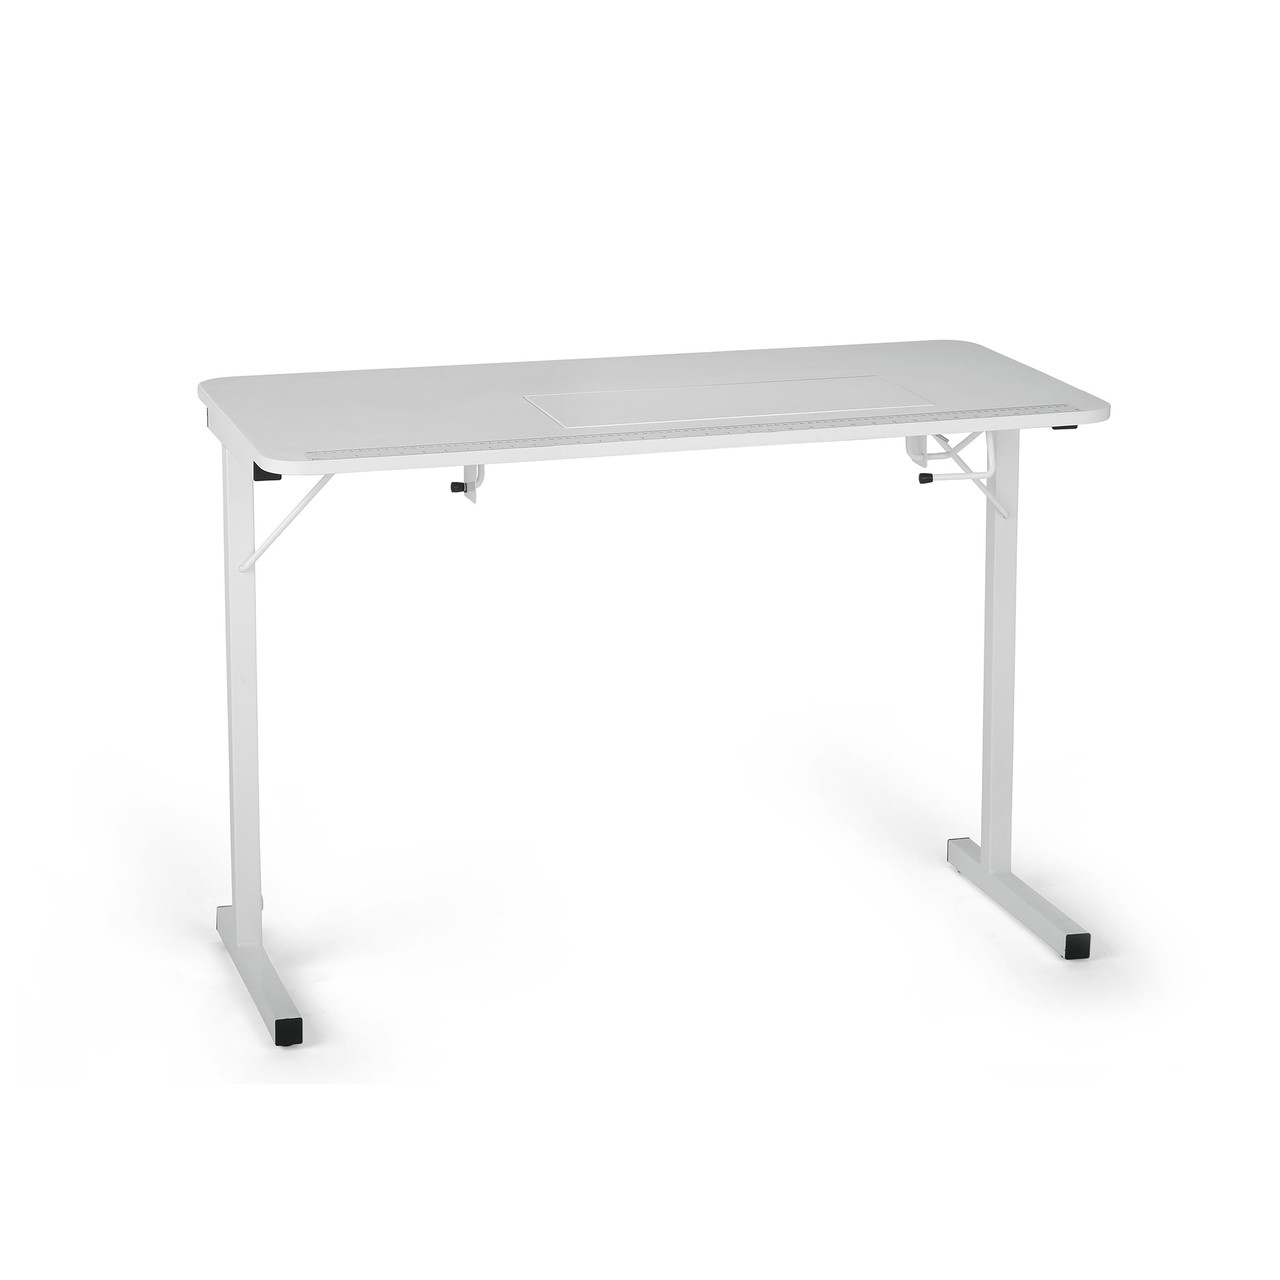 - Arrow 98601 Gidget Folding Sewing Machine And Craft Table $129.00